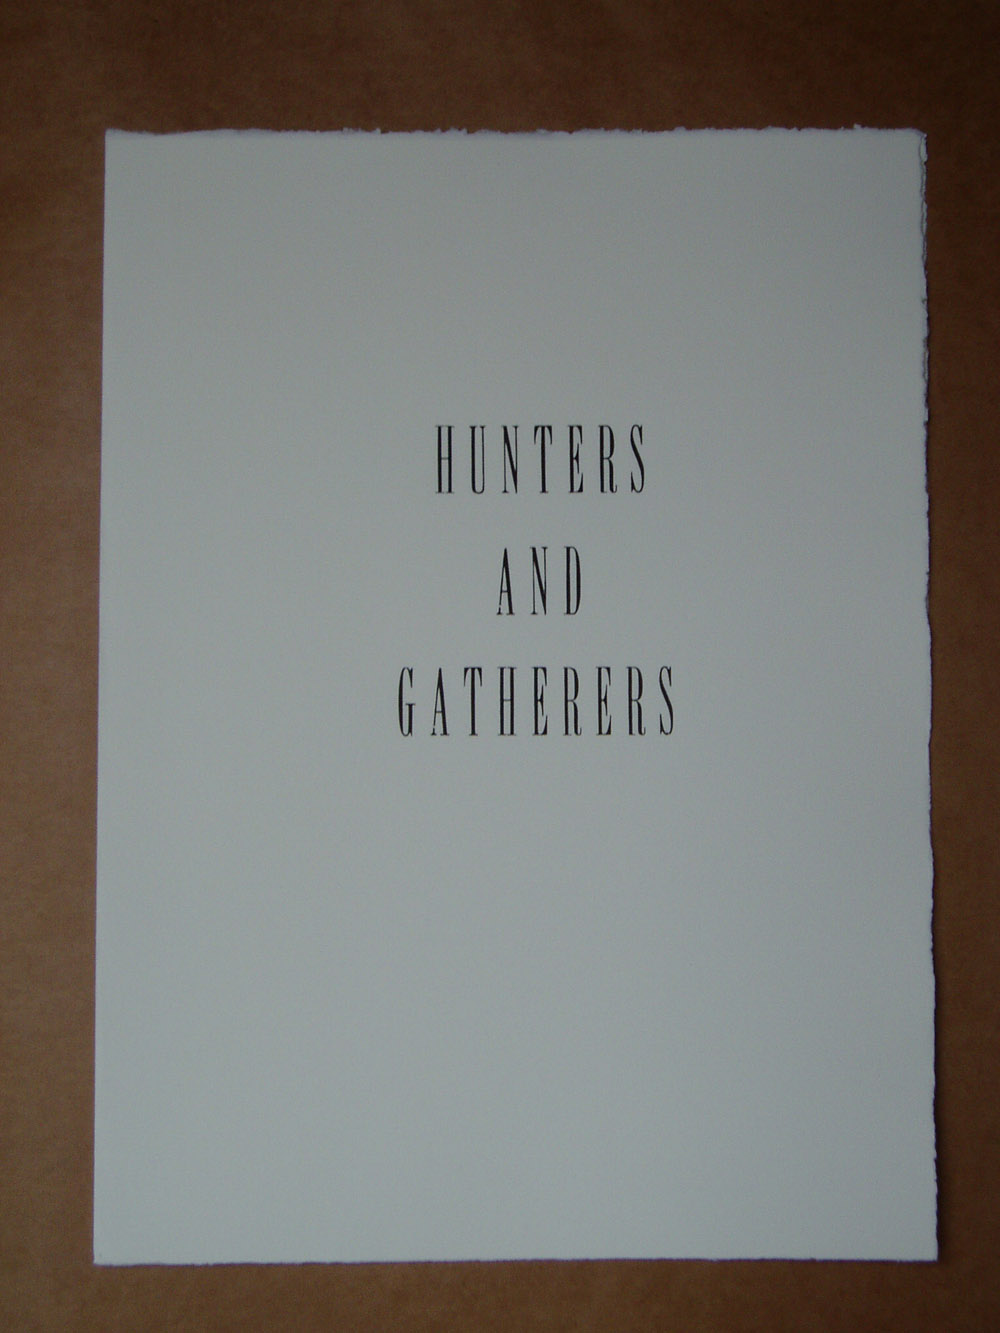 2. Hunters and Gatherers title page.jpg